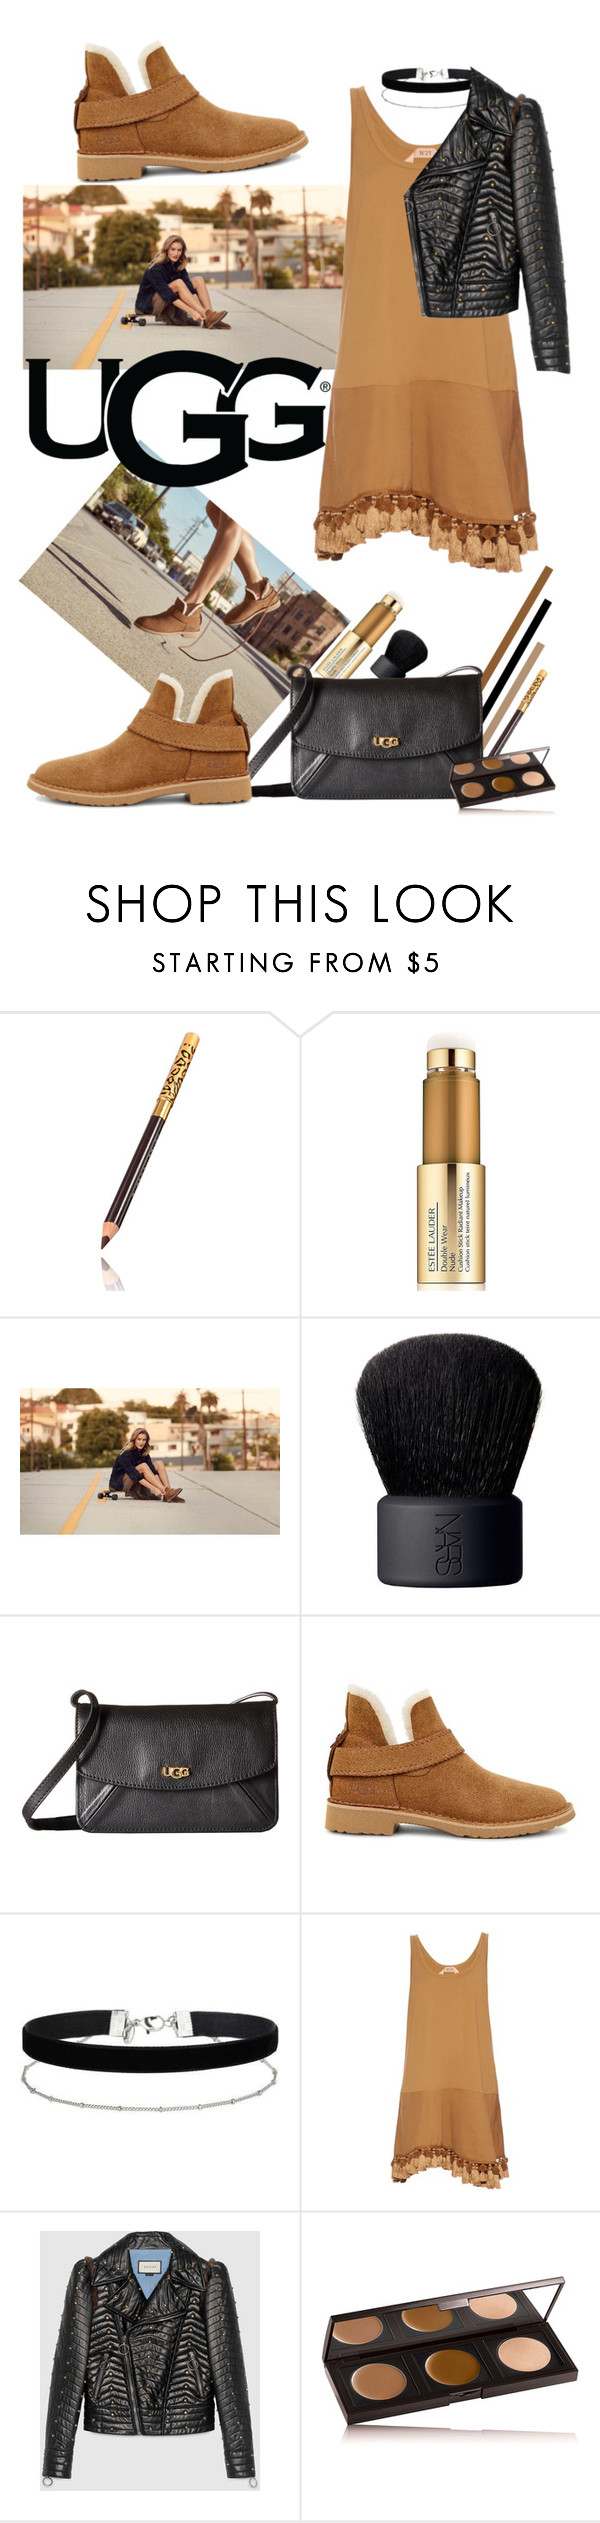 """""""The New Classics With UGG: Contest Entry"""" by iraavalon ❤ liked on Polyvore featuring Estée Lauder, UGG, NARS Cosmetics, Miss Selfridge, N°21, Gucci, Laura Mercier and ugg"""